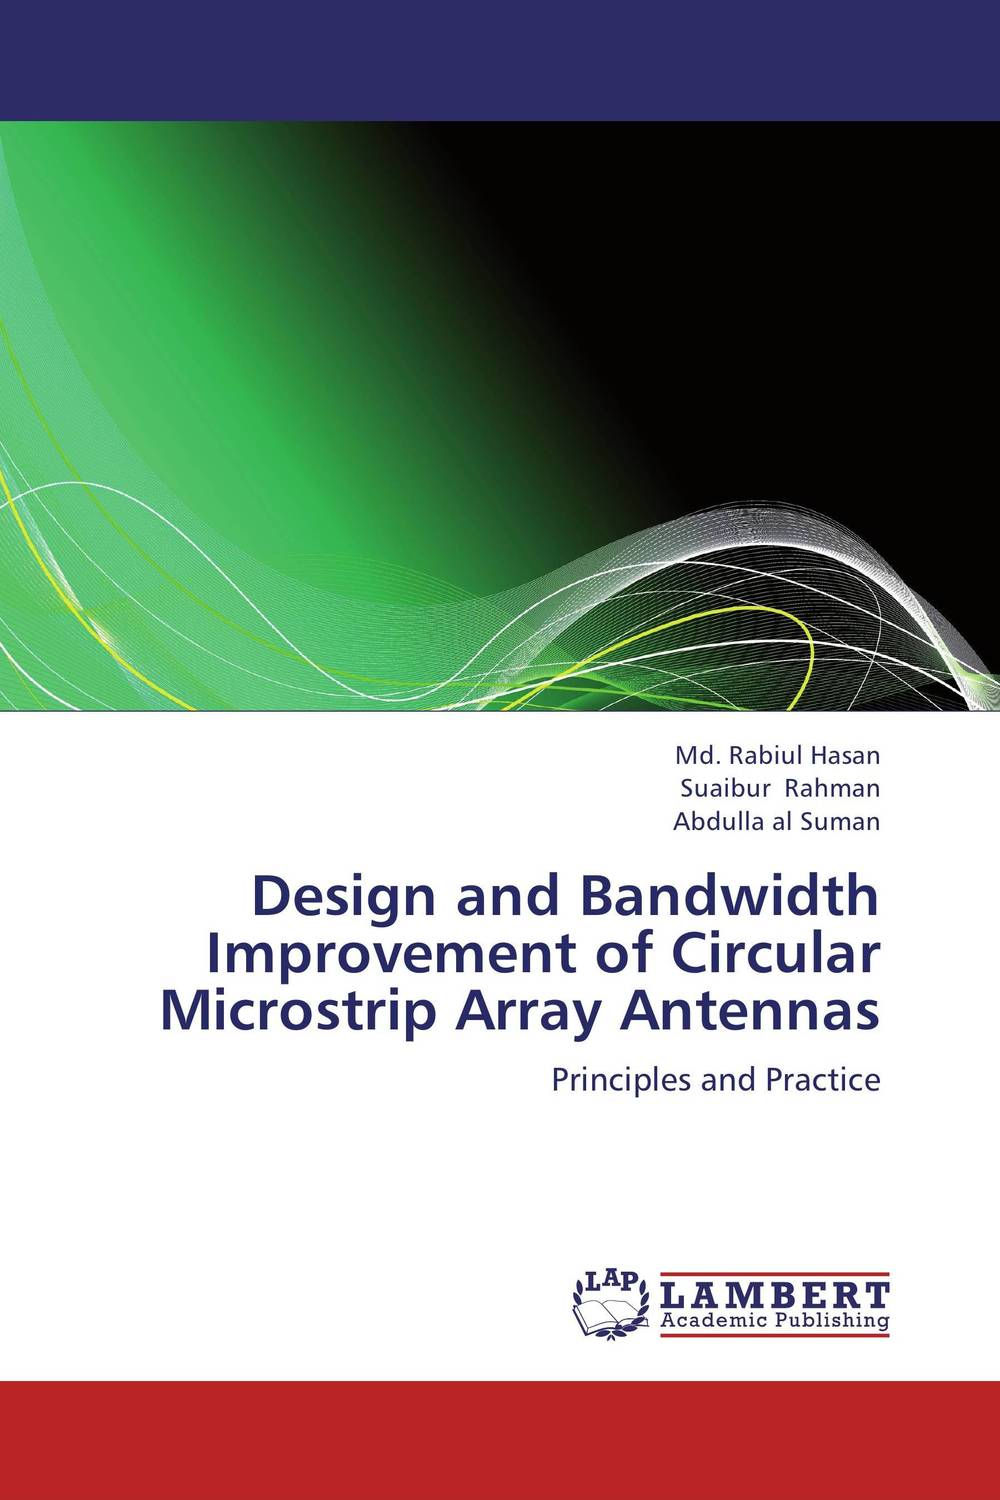 Design and Bandwidth Improvement of Circular Microstrip Array Antennas design of microstrip antenna in wireless communication